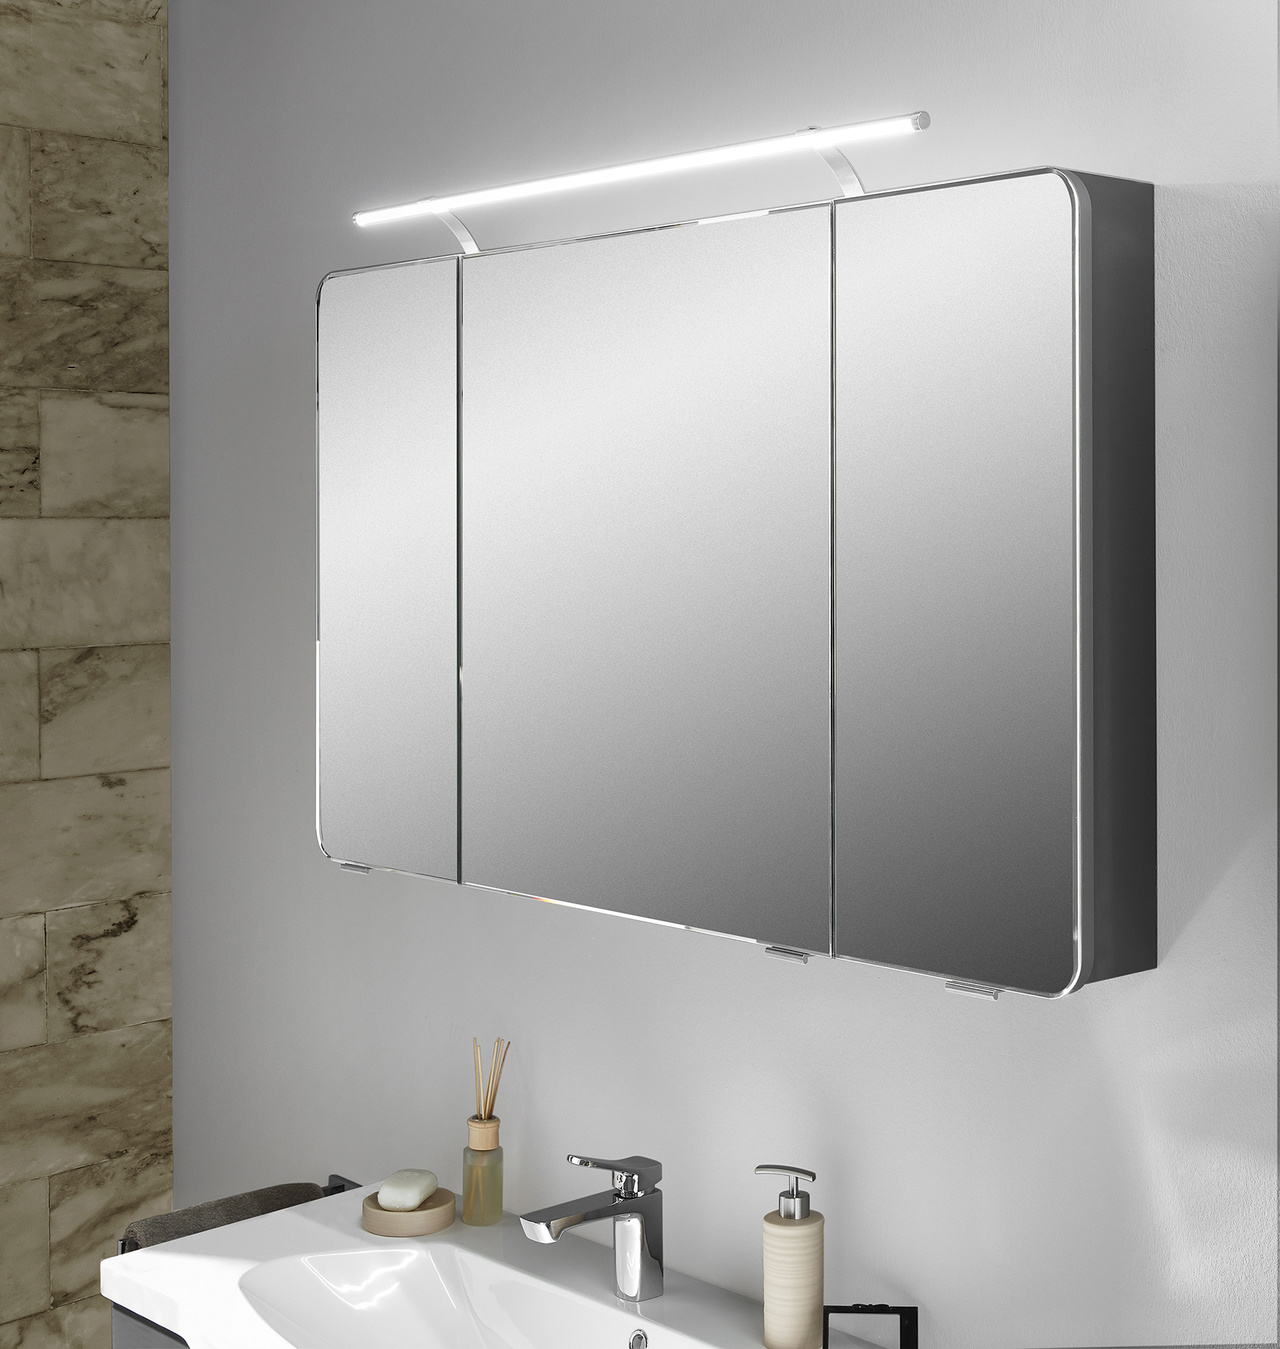 Pelipal De fokus 4005 fokus bathroom furniture brands furniture by pelipal